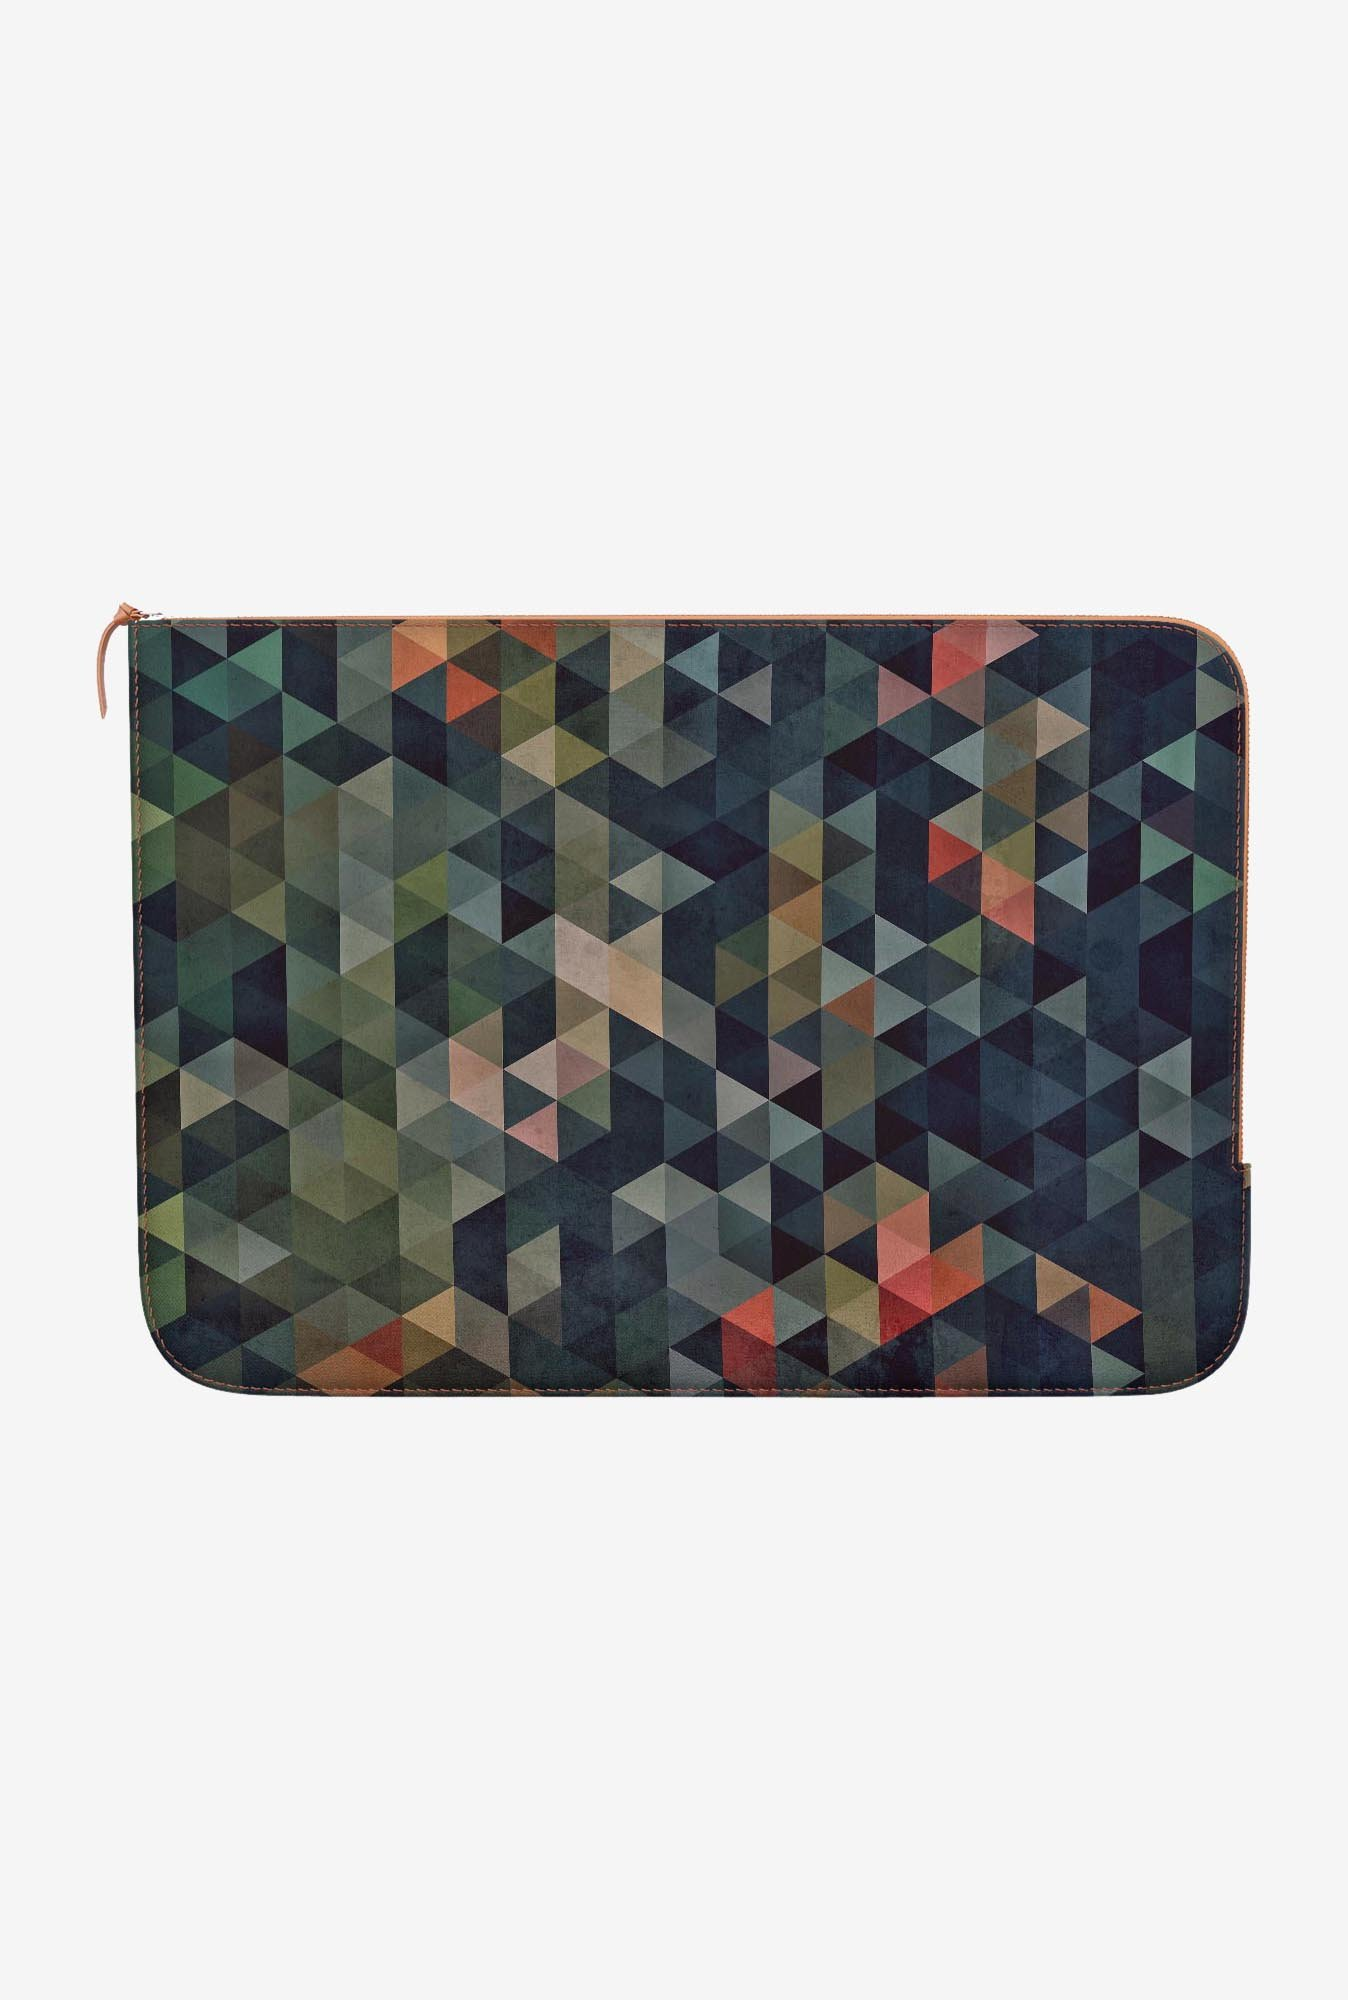 DailyObjects ymprycyss MacBook Pro 15 Zippered Sleeve